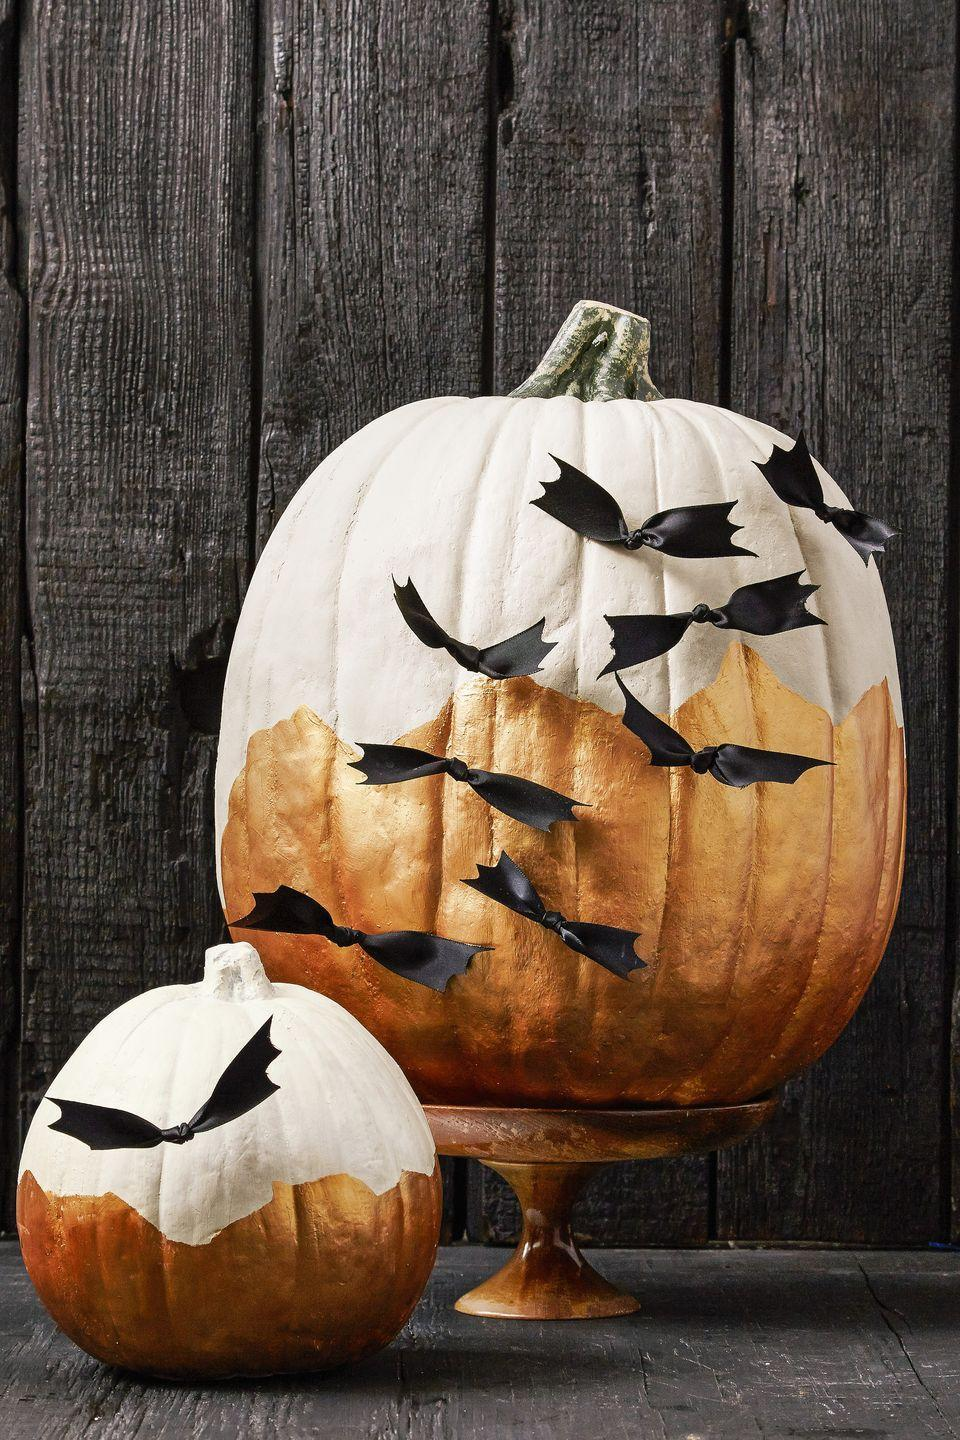 """<p>Here's a batty idea: After painting your pumpkin, tie a loose knot in the middle of a four-inch piece of black satin ribbon, then cut the ends to resemble wings. Once you have a cauldron of bats, attach them to a painted pumpkin with sewing pins. </p><p><a class=""""link rapid-noclick-resp"""" href=""""https://www.amazon.com/Black-Double-Face-Satin-Ribbon/dp/B00CIXSW0M?tag=syn-yahoo-20&ascsubtag=%5Bartid%7C10055.g.2592%5Bsrc%7Cyahoo-us"""" rel=""""nofollow noopener"""" target=""""_blank"""" data-ylk=""""slk:SHOP RIBBON"""">SHOP RIBBON</a></p>"""